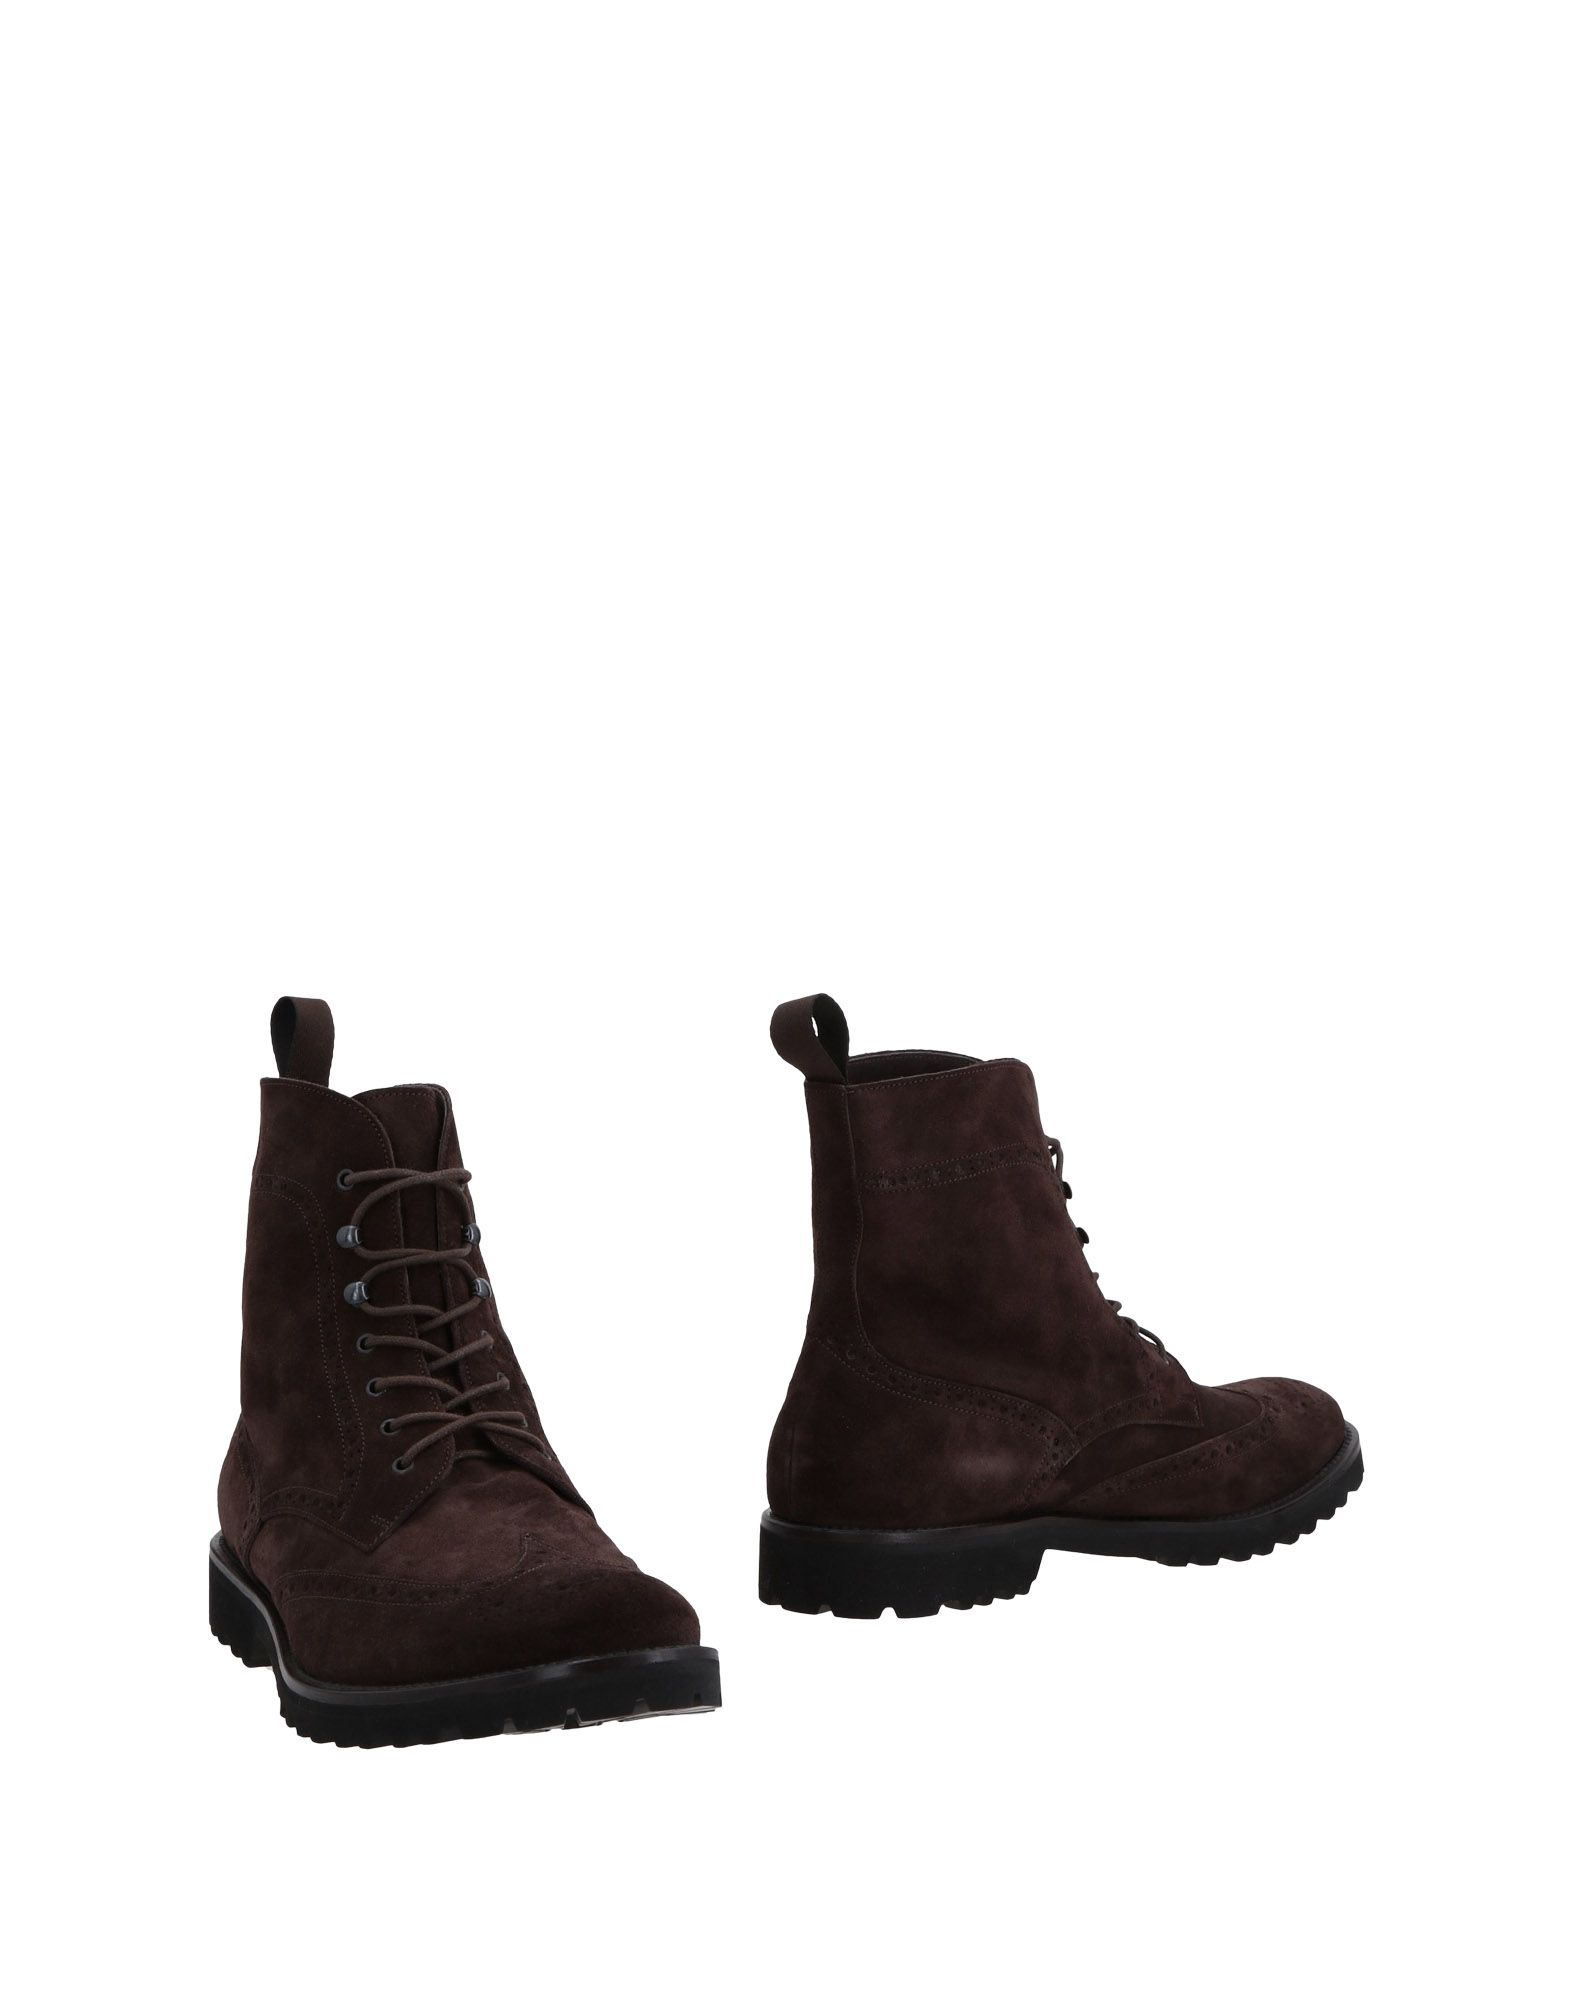 Sear's Boots - Men Sear's Boots online 11485196UX on  Canada - 11485196UX online 78b675